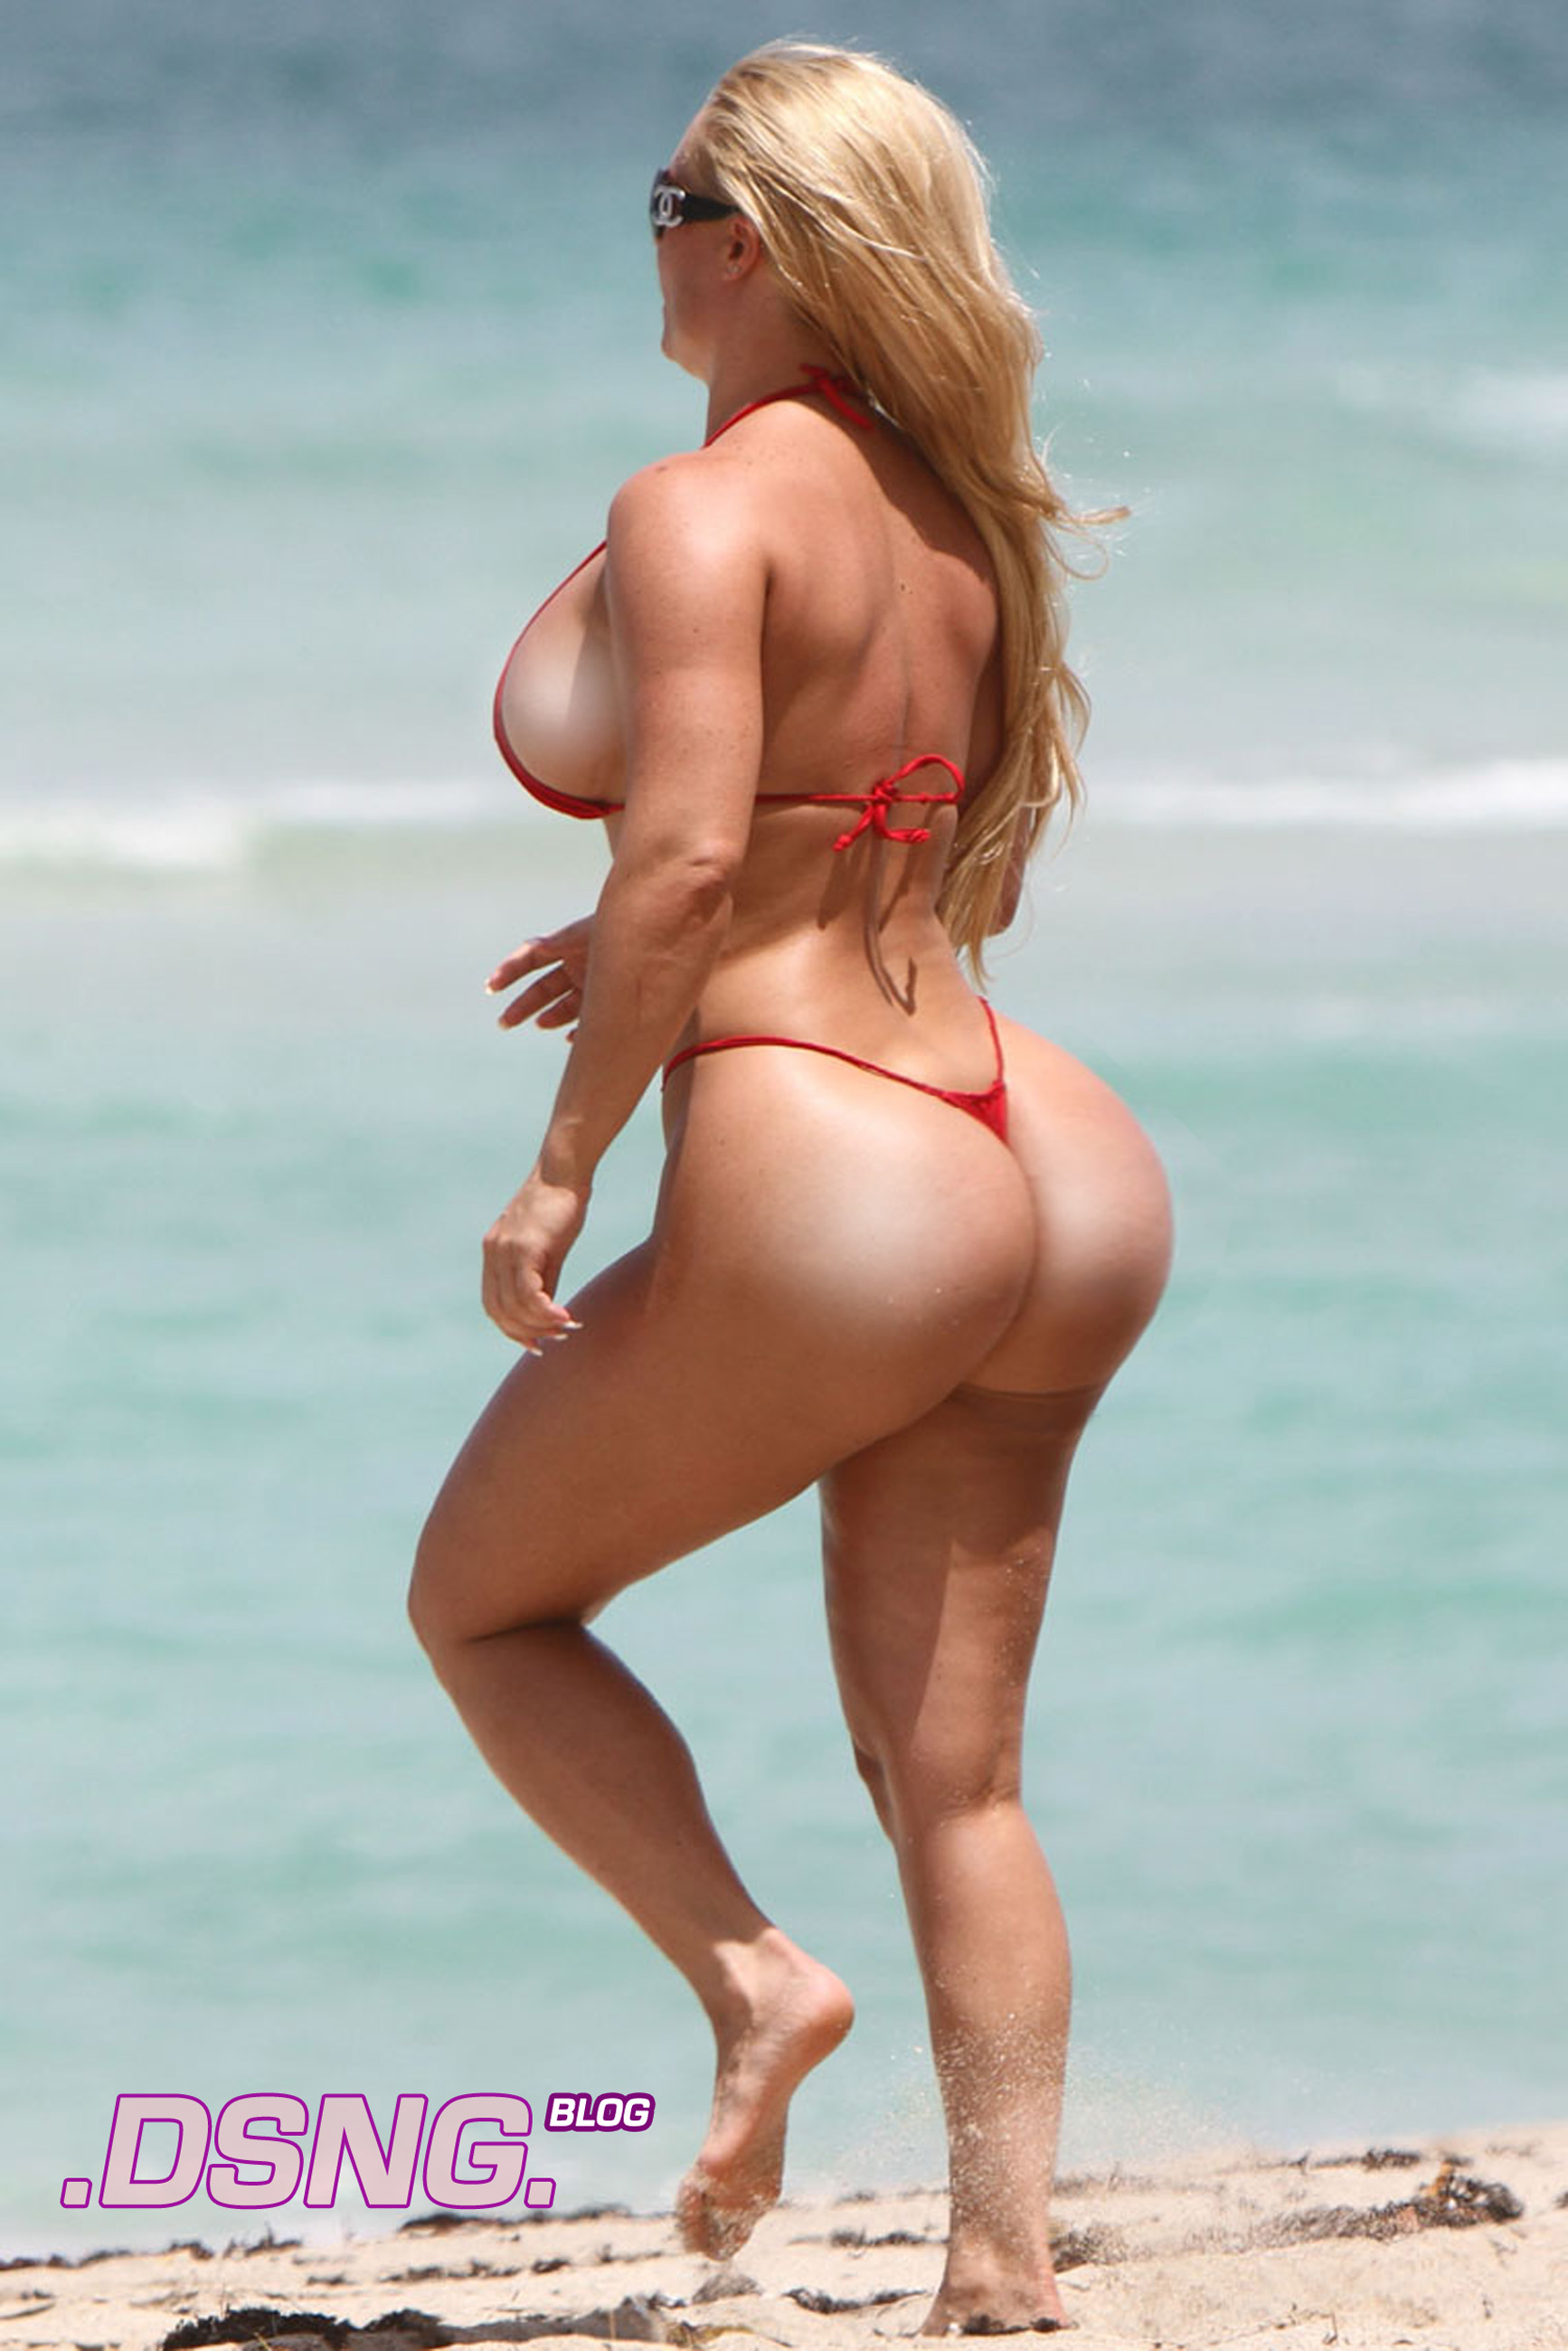 Coco Big Phat Fat Nicole Austin Booty Butt Ass White Girl Pawg